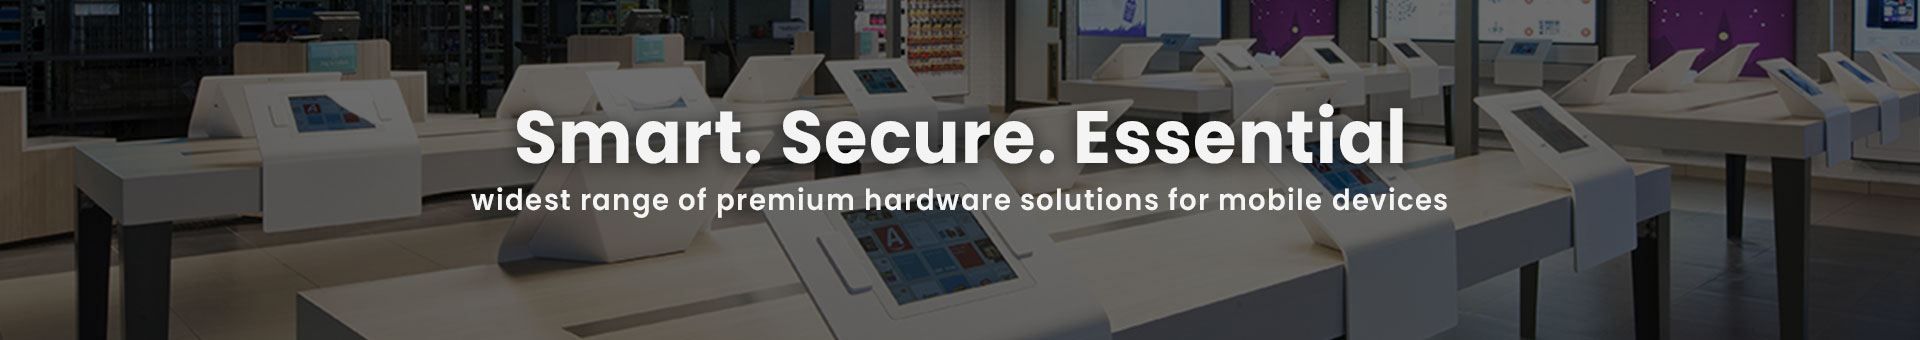 smart-secure-essential